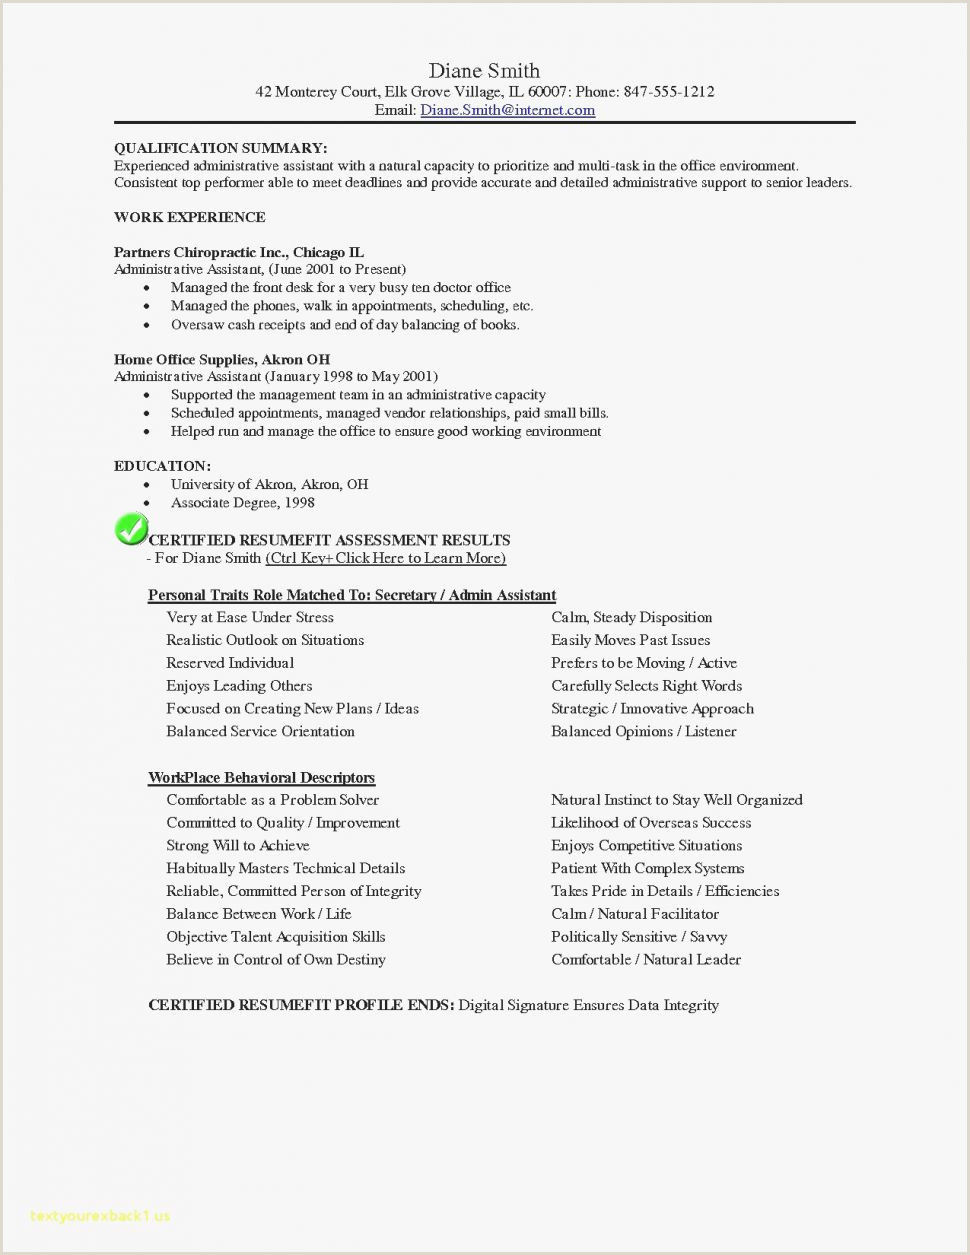 Hairstyles Free Creative Resume Templates Smart Free